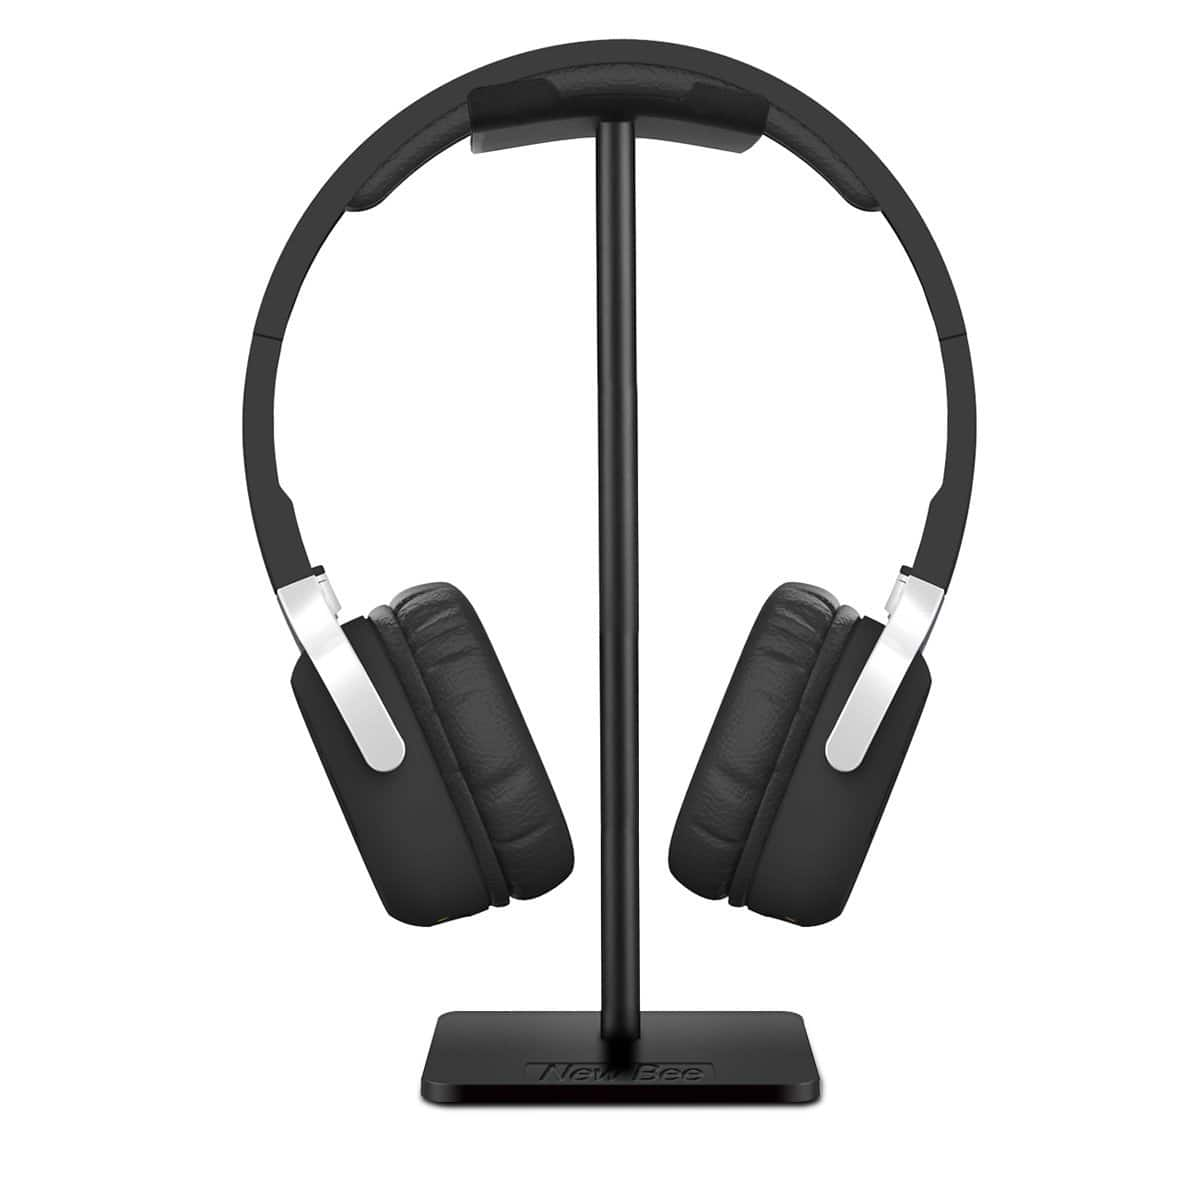 Headphone Stand Headset Holder New Bee Earphone Stand with Aluminum Supporting Bar Flexible Headrest $6.9